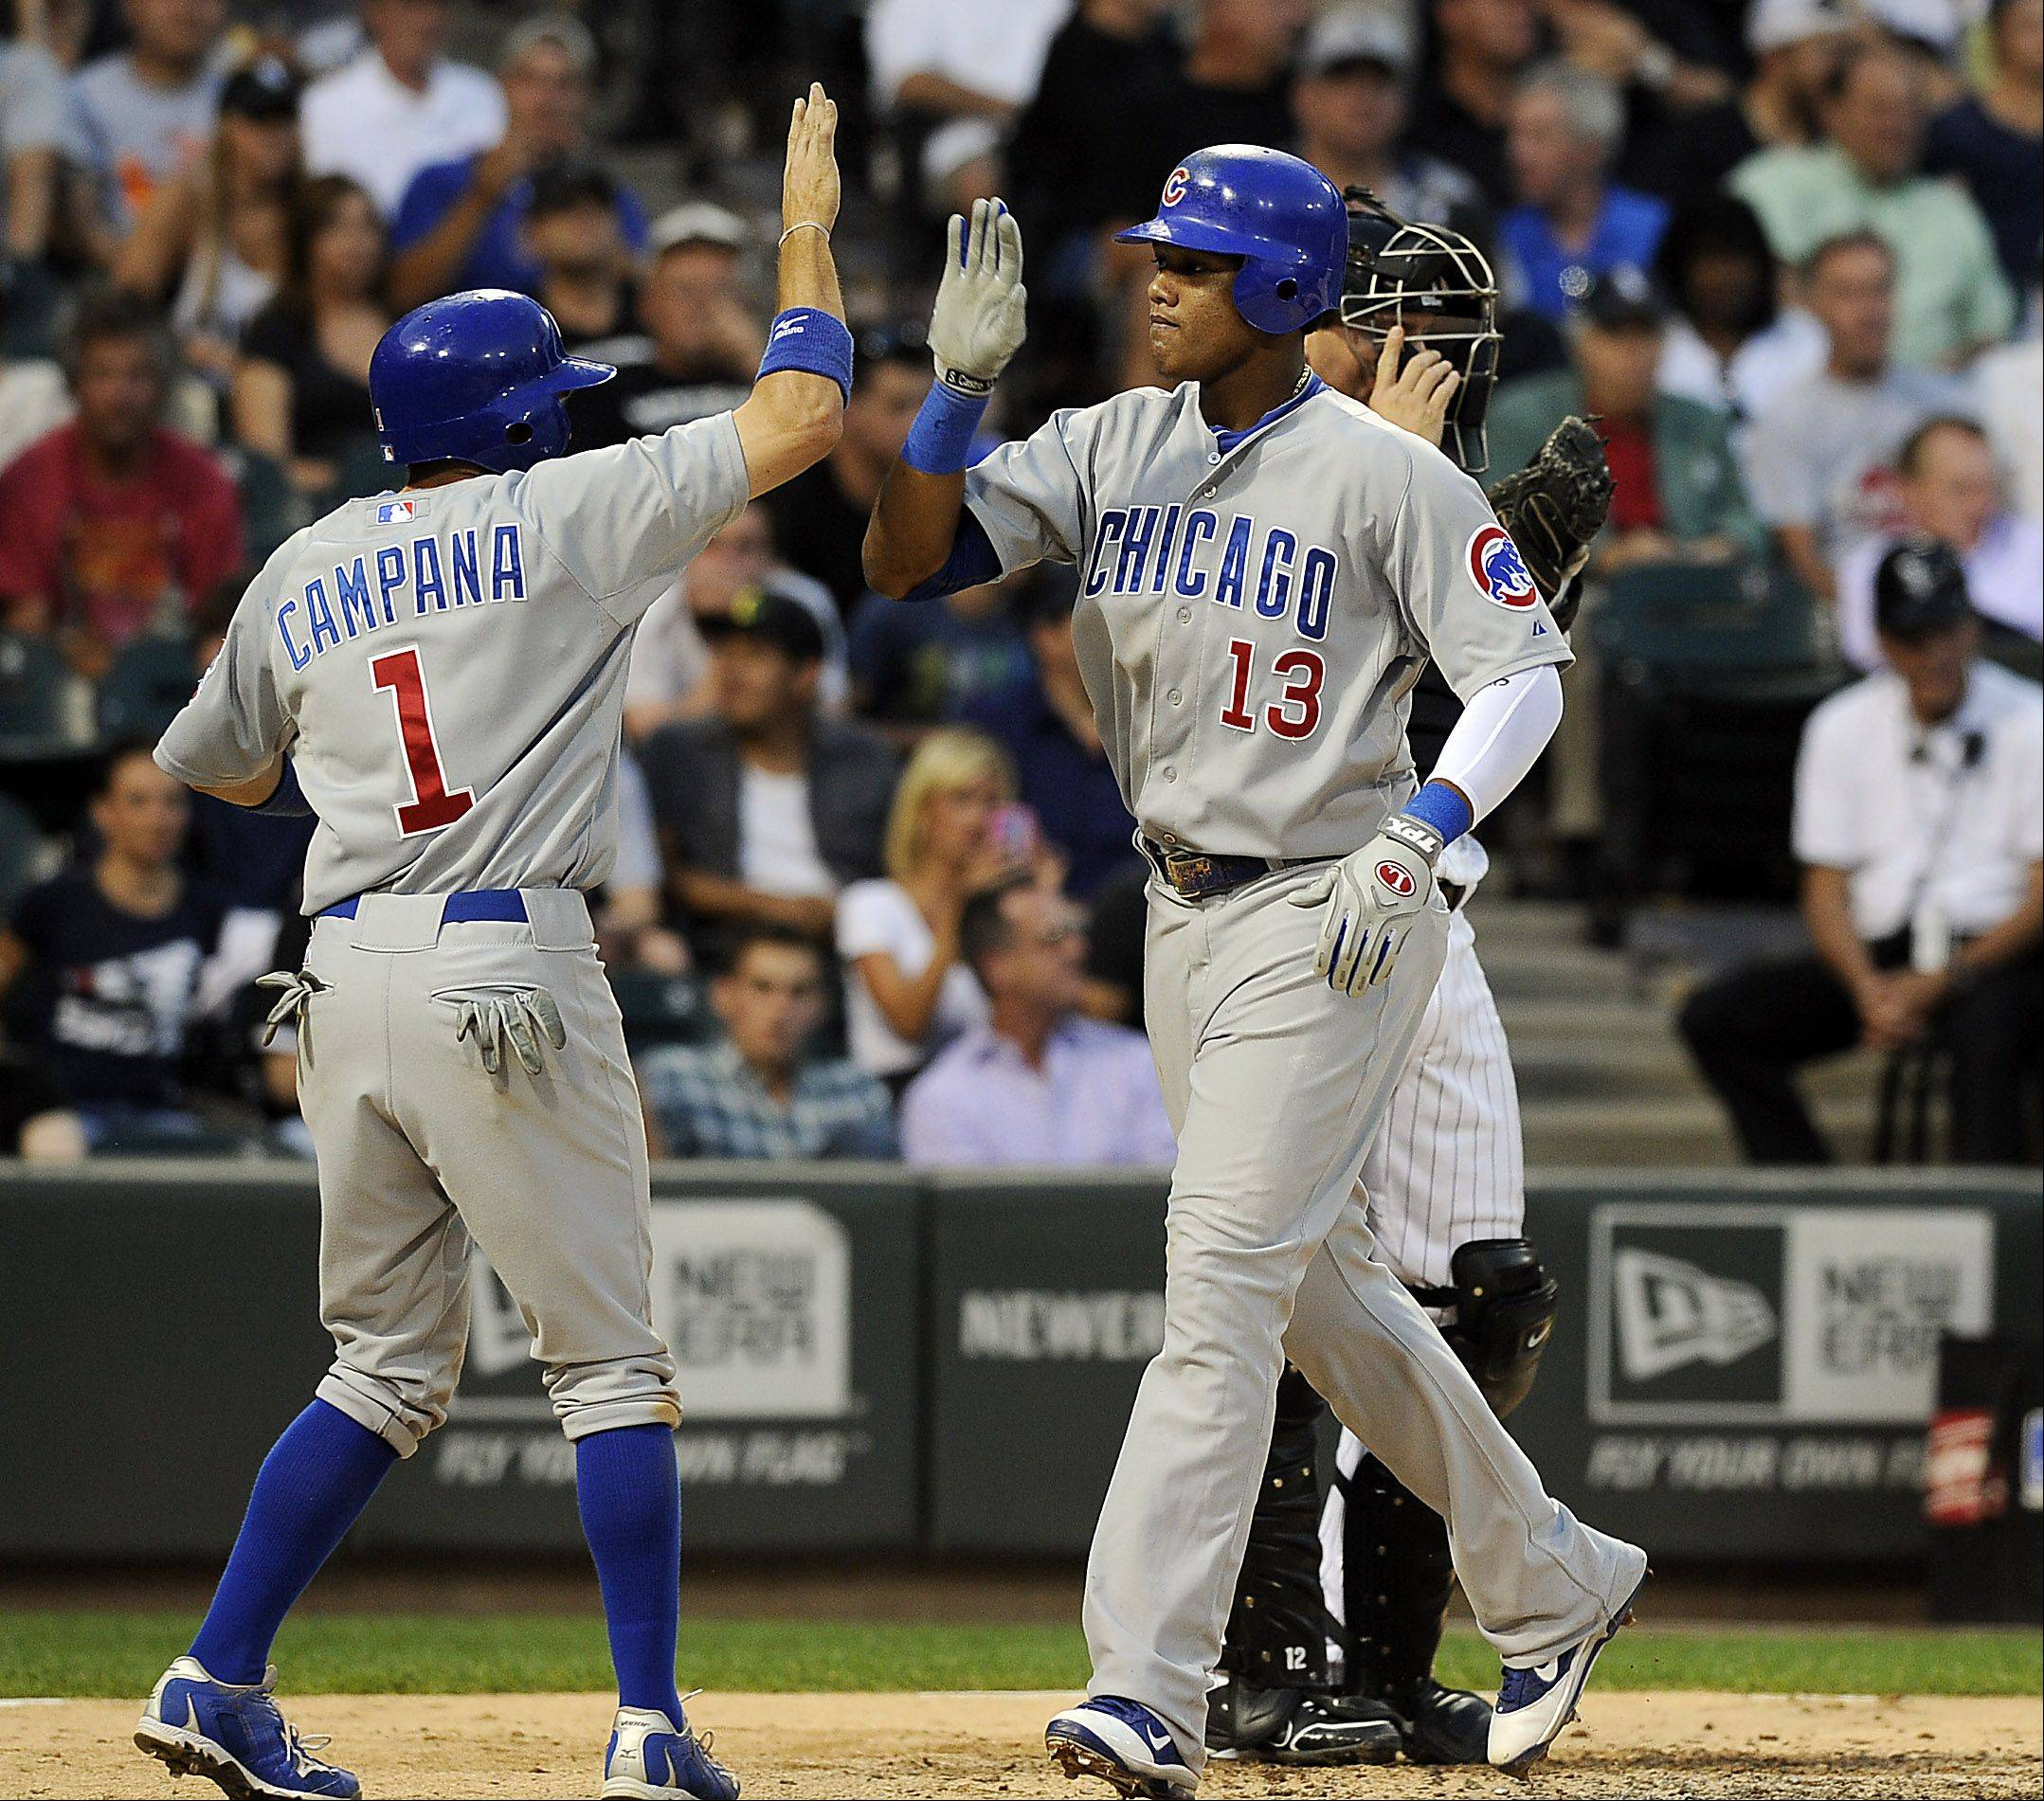 Chicago Cubs' Starlin Castro clubbed a fifth inning home run and celebrated with teammate Tony Campana